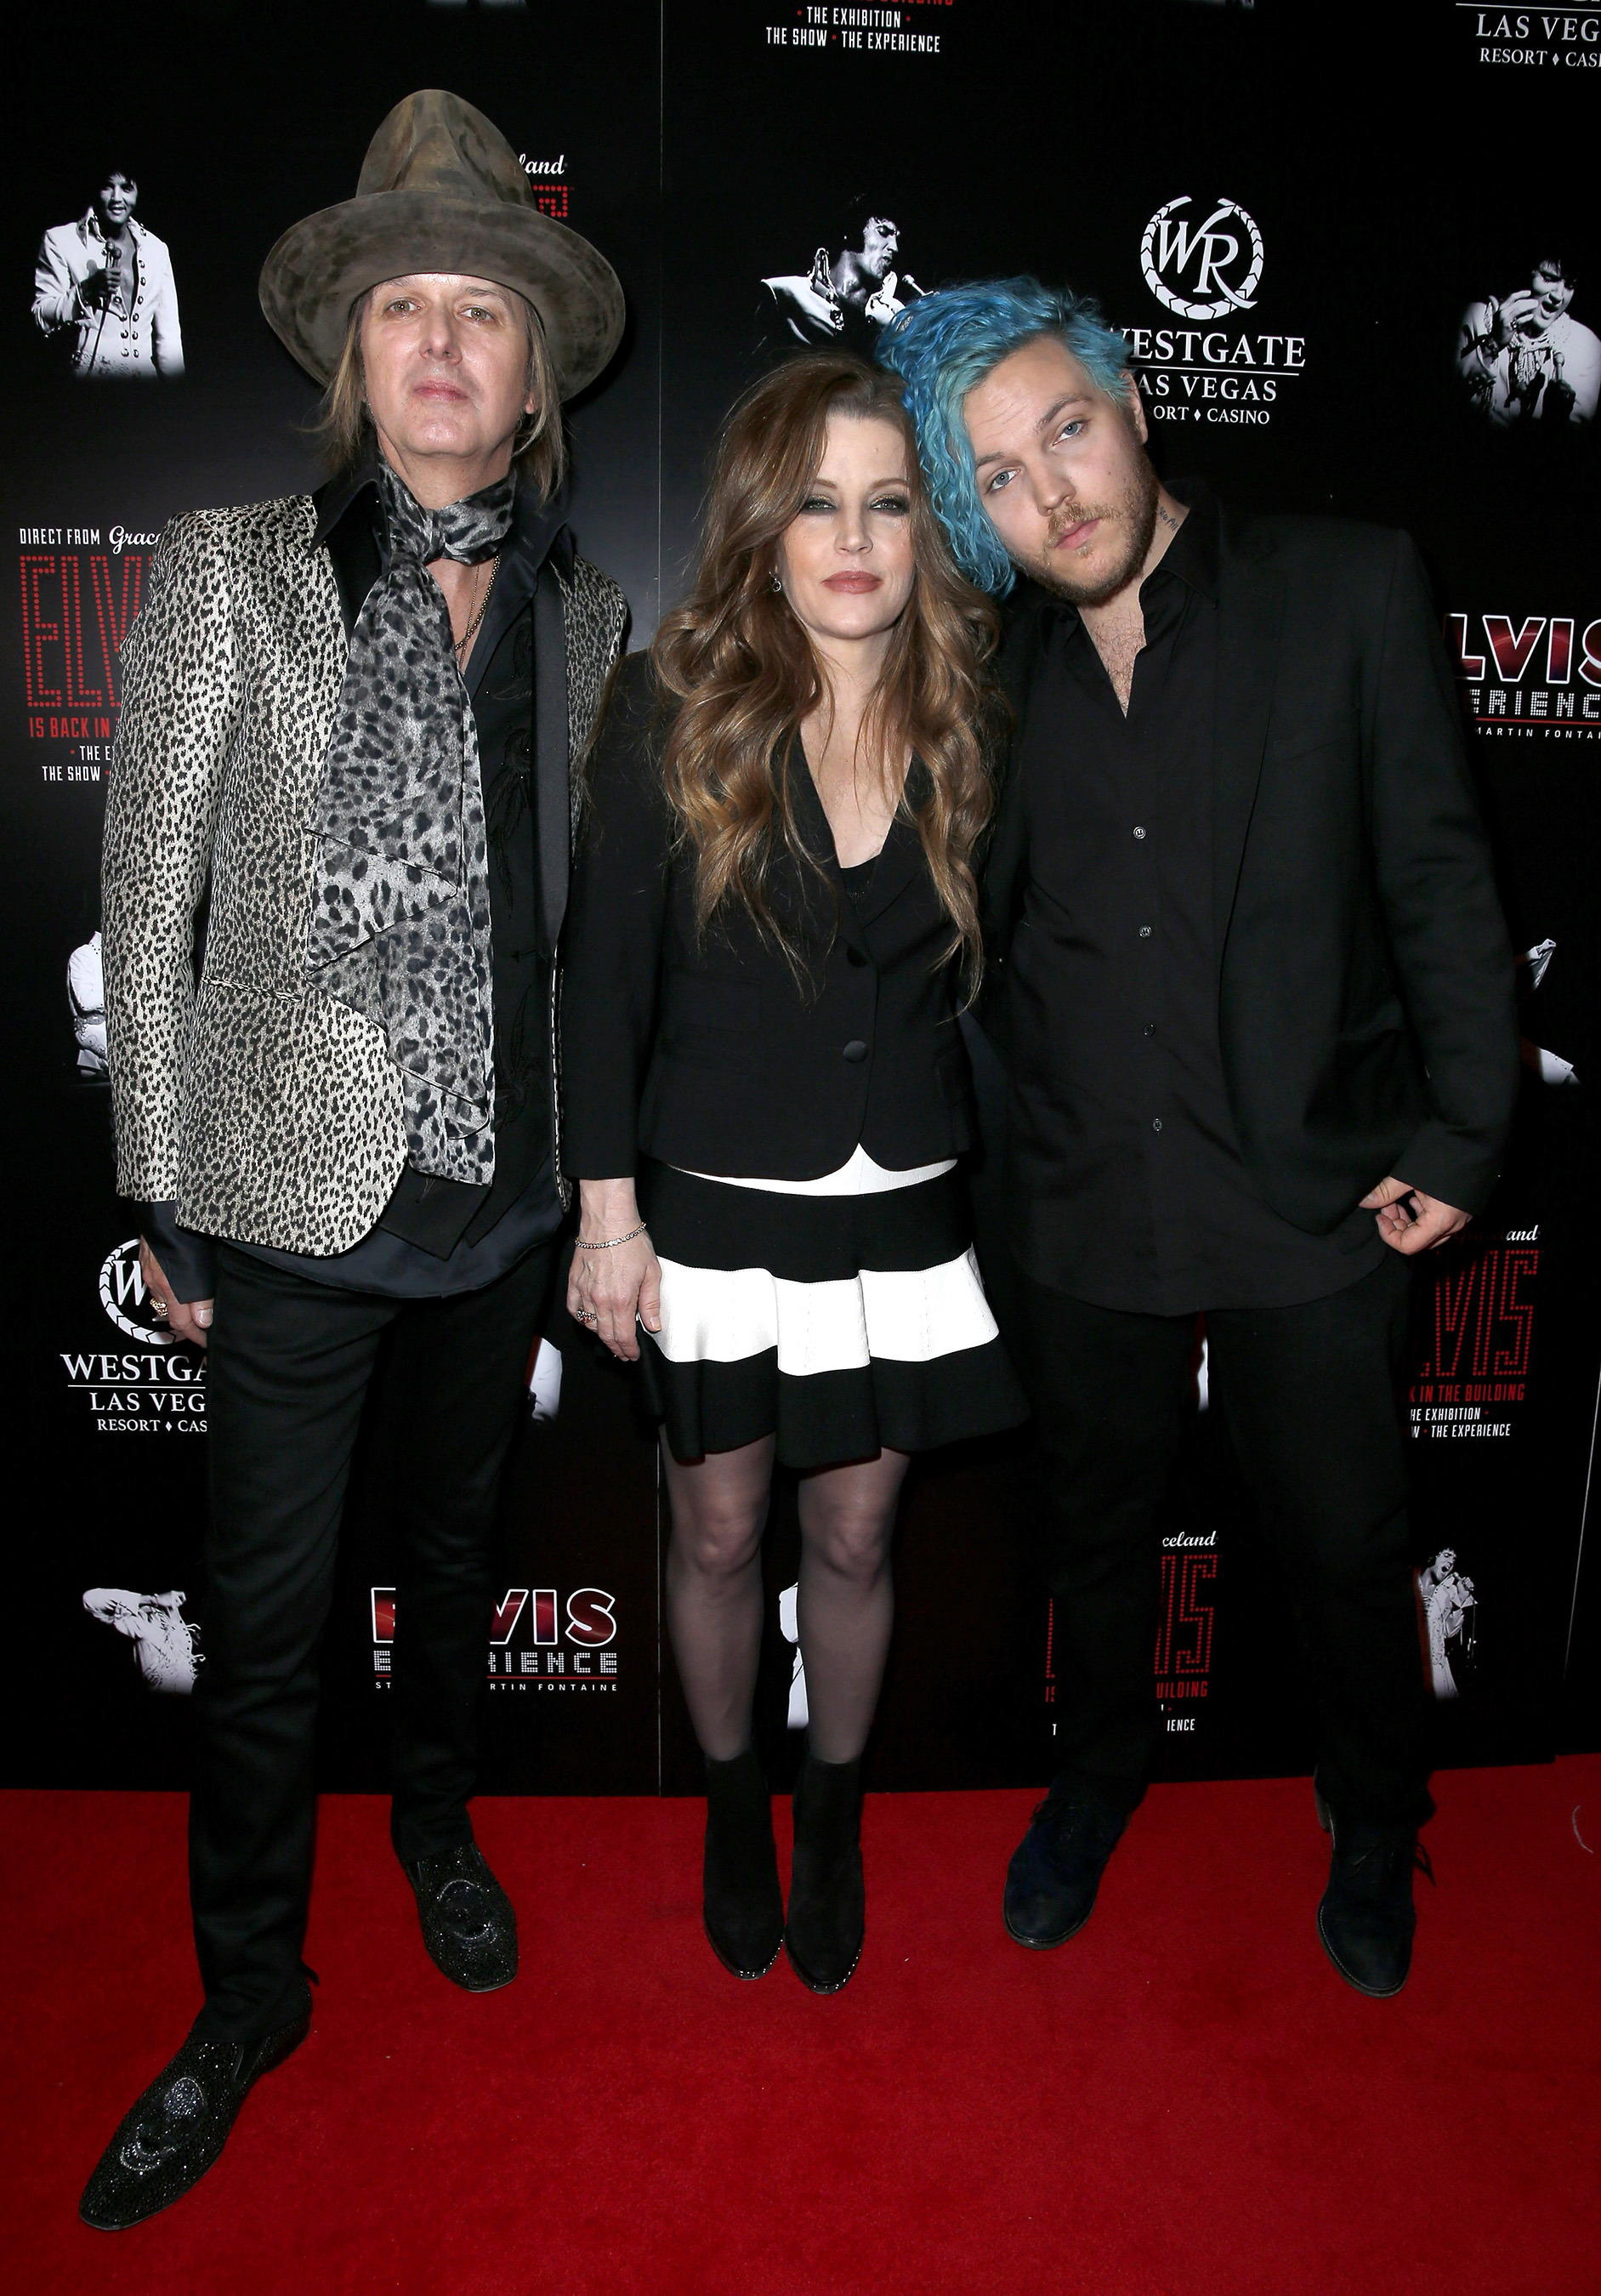 """Lisa Marie Presley and husband Michael Lockwood attend the red carpet premiere of """"The Elvis Experience"""" musical production with Lisa Marie's son and Elvis' grandson, musician Benjamin Keough."""